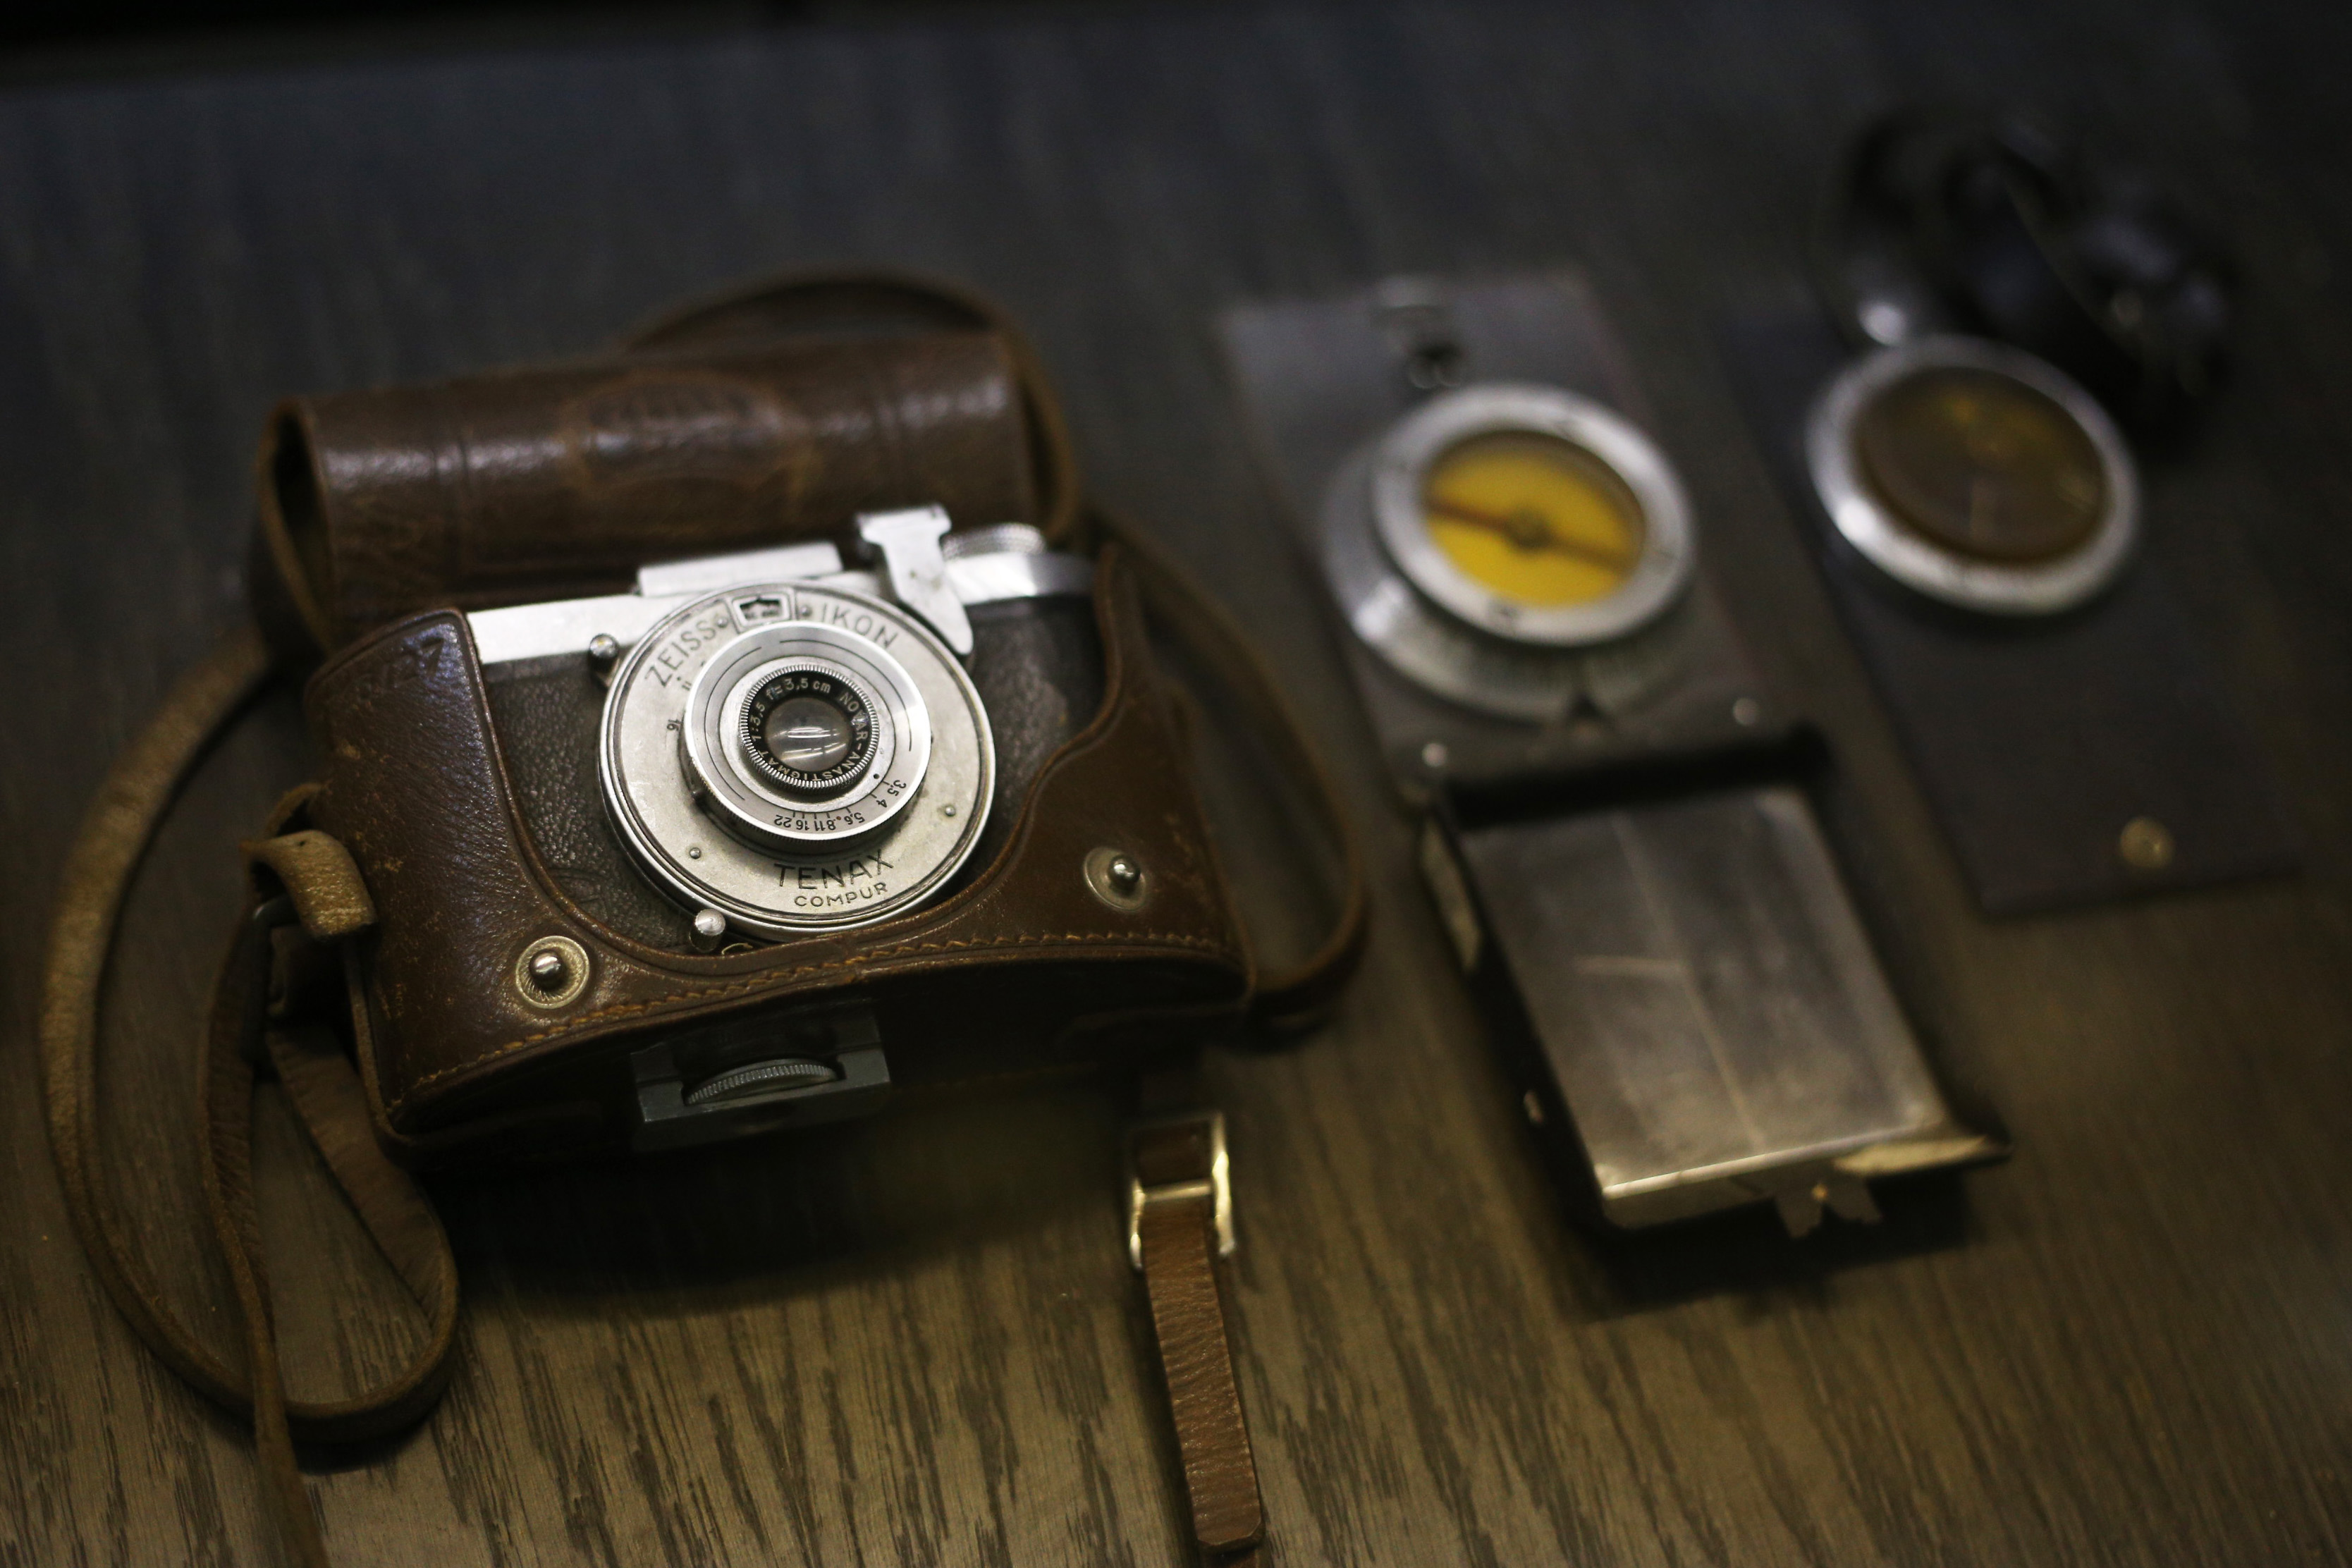 Military equipments and spying materials used by the employees of Committee for State Security (KGB) during the Cold War, are displayed at the Central Armed Forces Museum in northern Moscow, Russia on June 3, 2014.